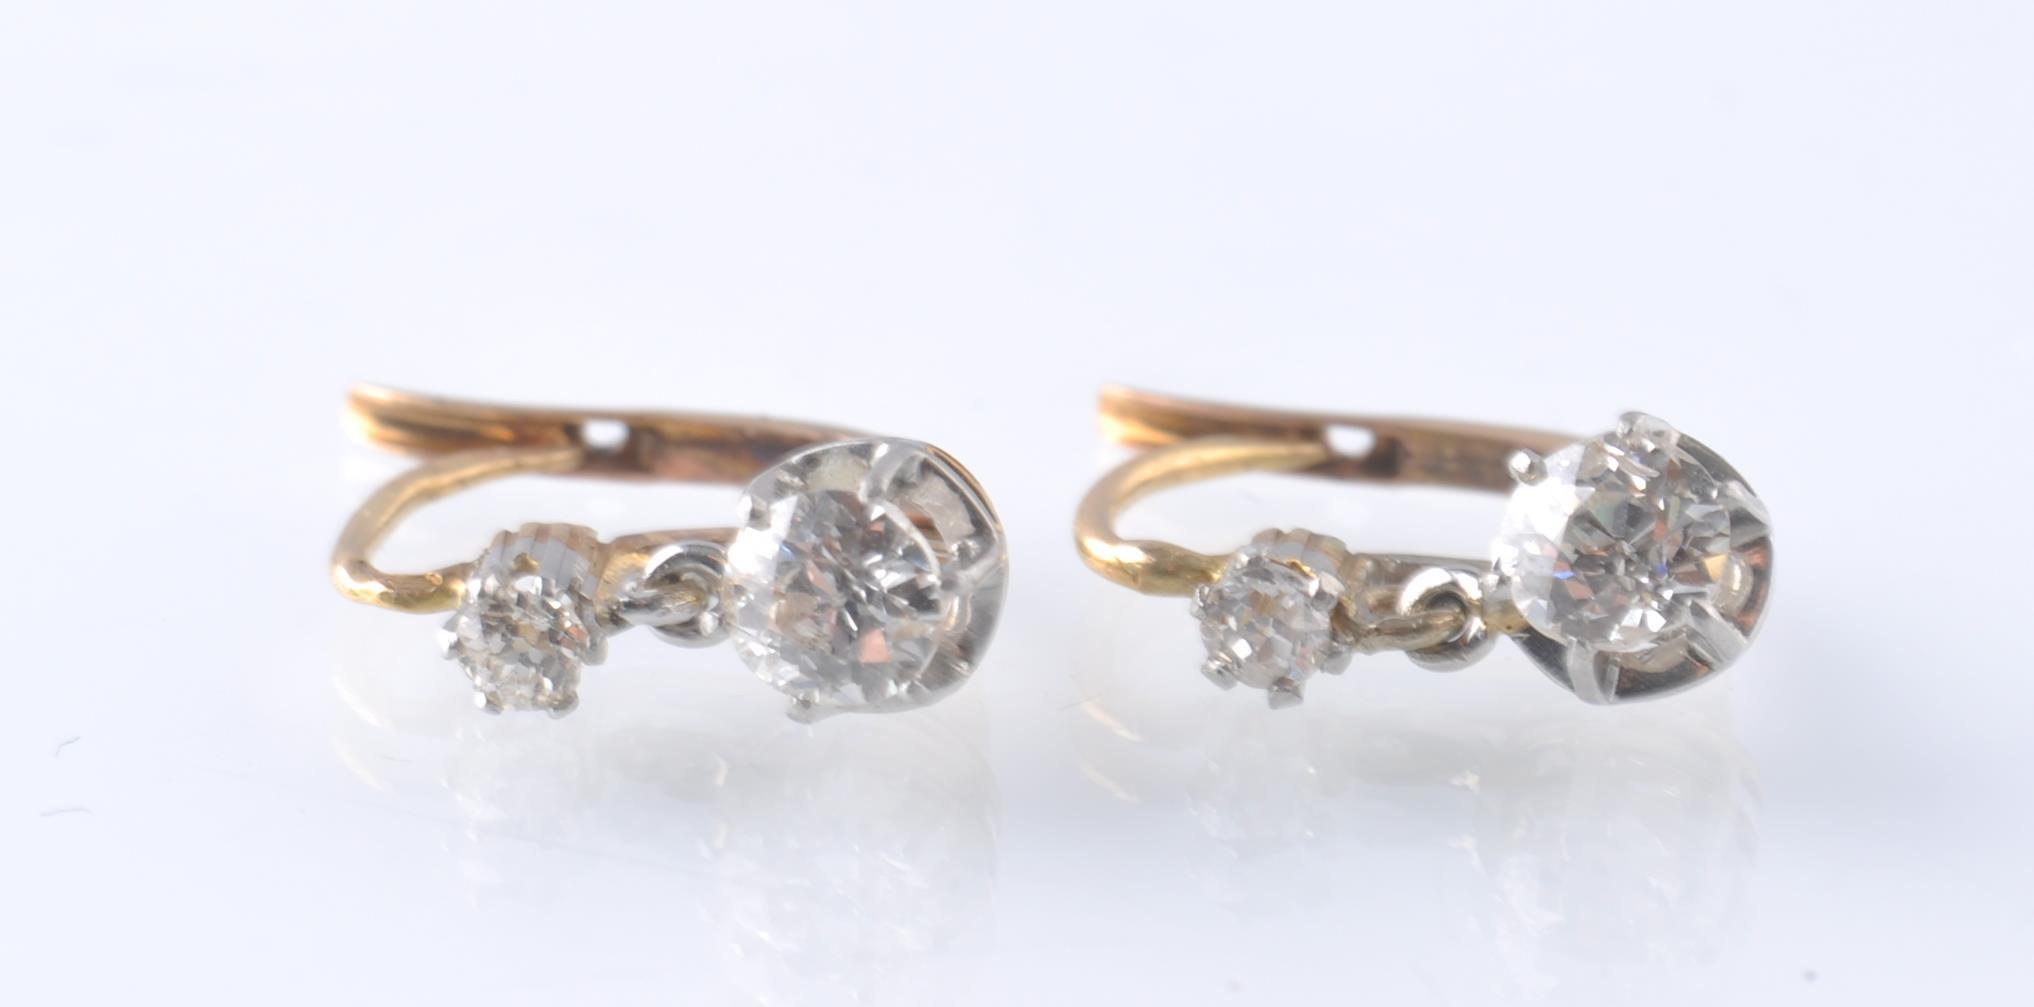 Lot 140 - A PAIR OF FRENCH 18CT GOLD PLATINUM AND DIAMOND DR